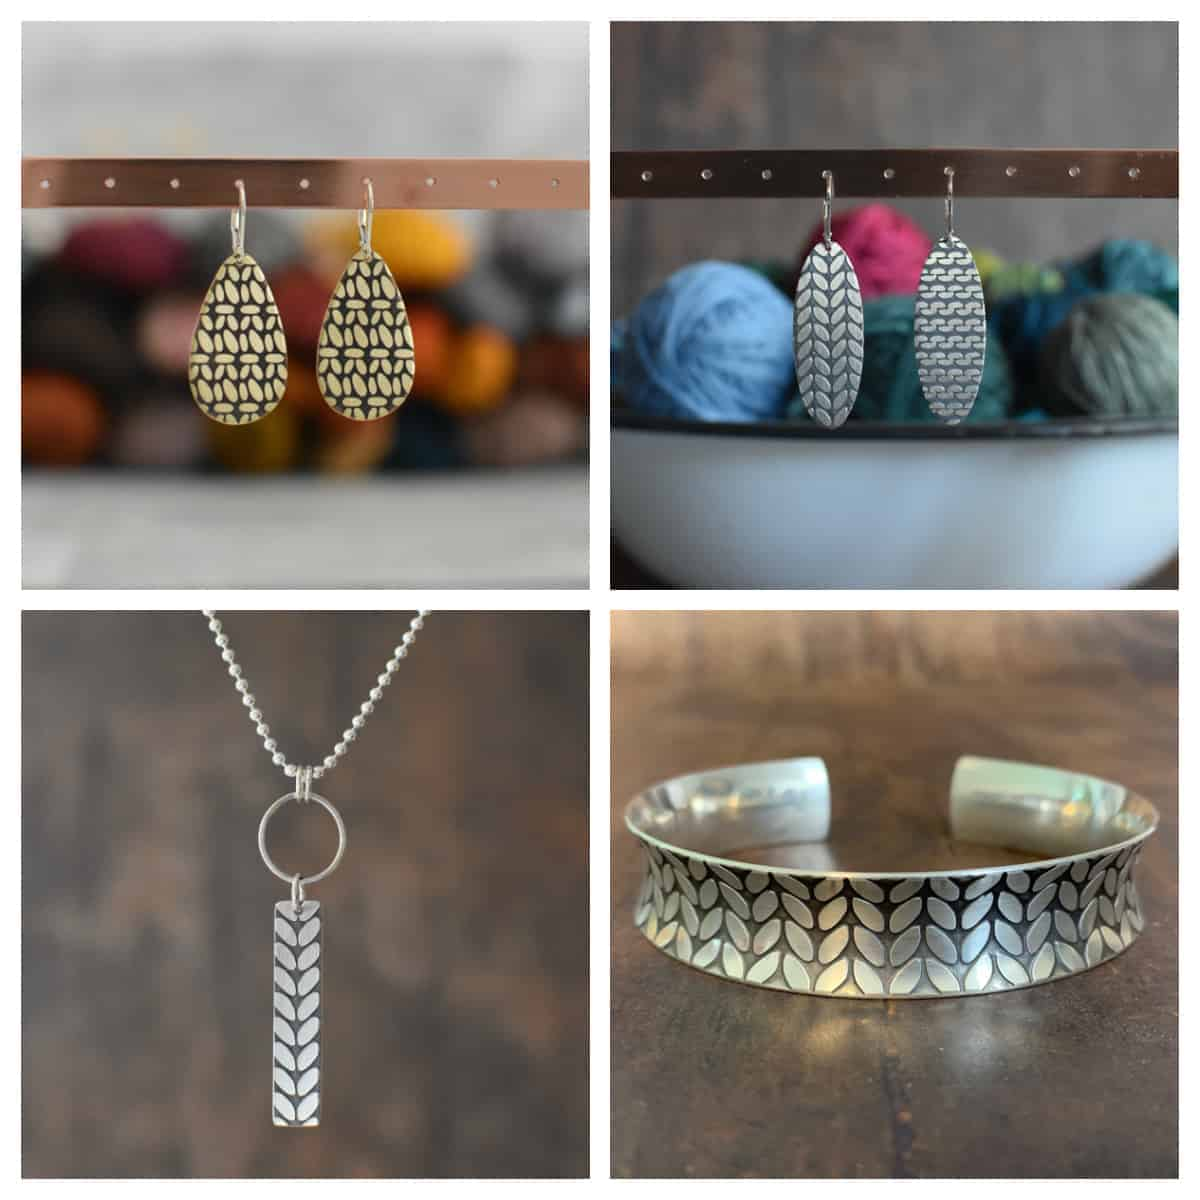 Knit stitch jewelry collage